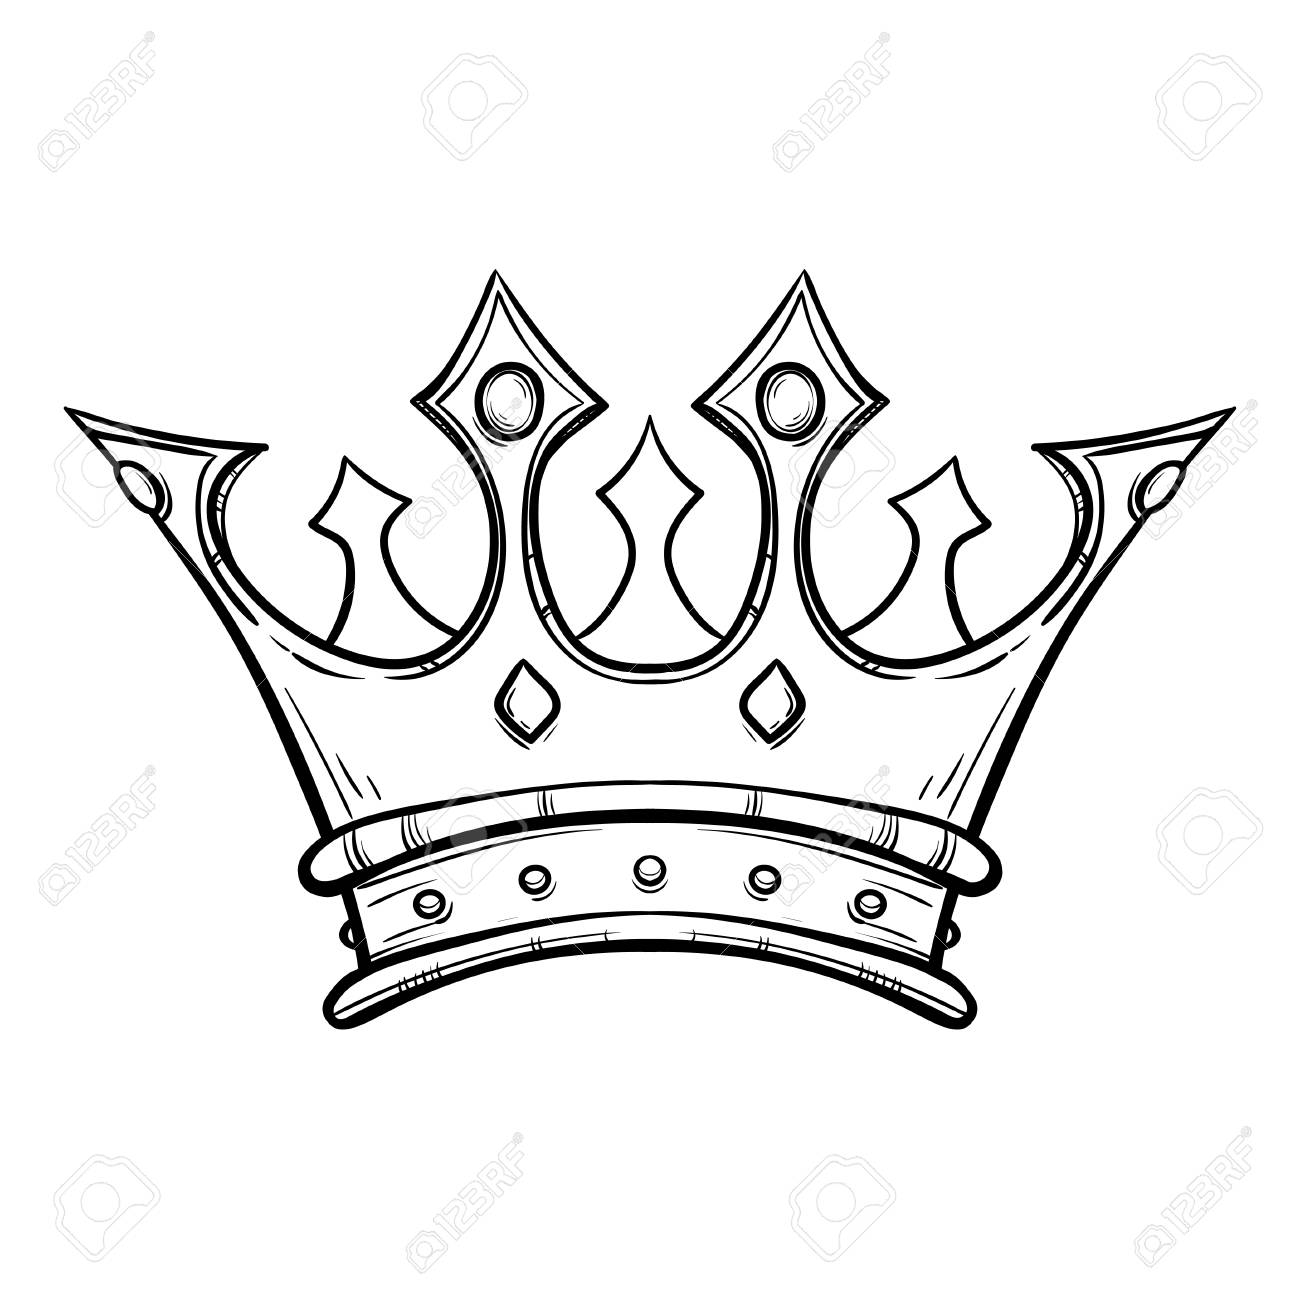 1300x1300 Hand Drawn King Crown Hand Drawn Royalty Free Cliparts, Vectors